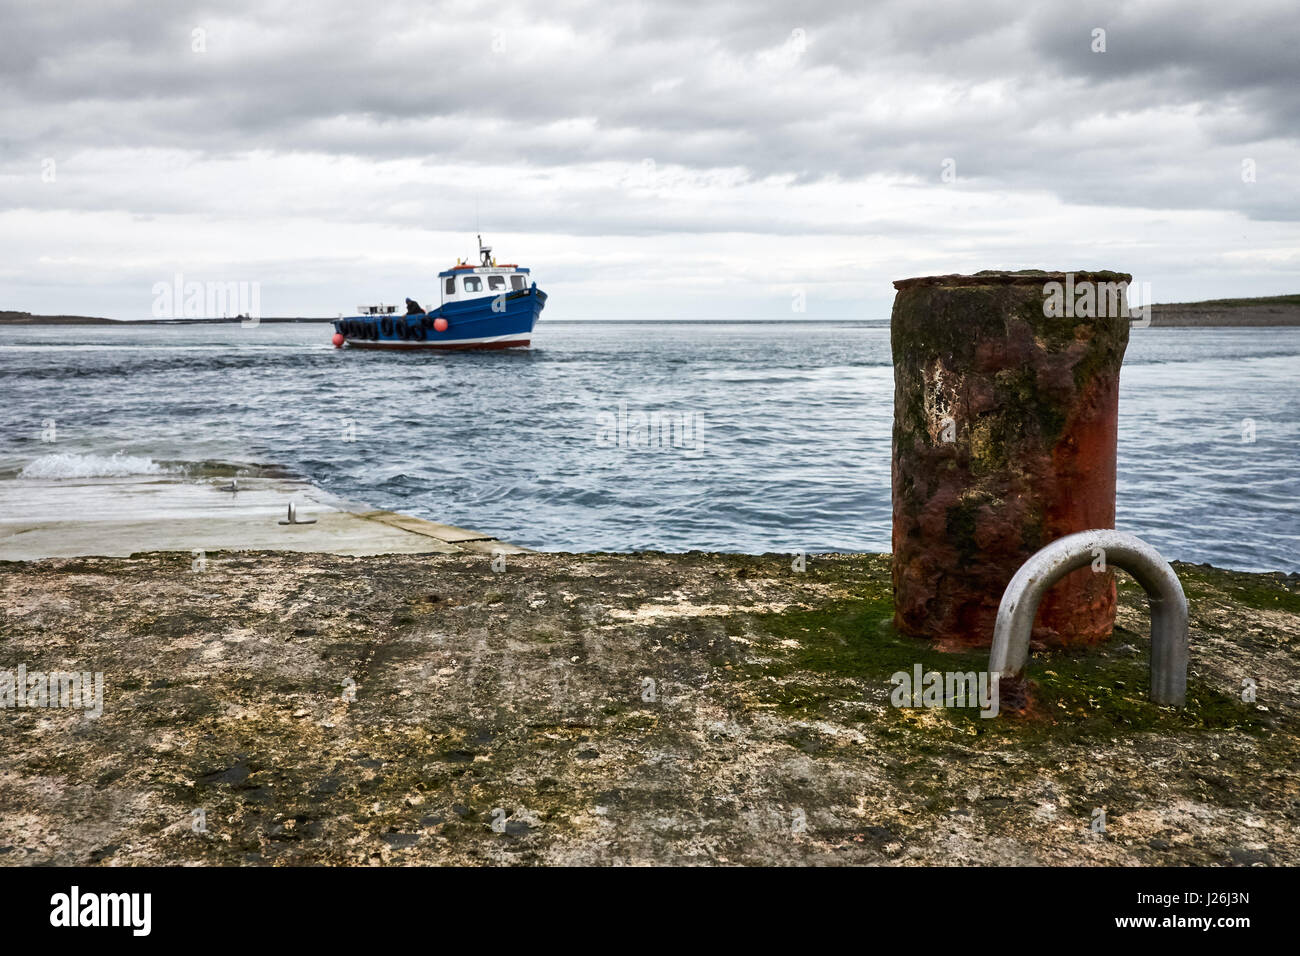 A small passenger motor boat approaches a slipway under grey skies toward a post and eyelet to tying off. - Stock Image